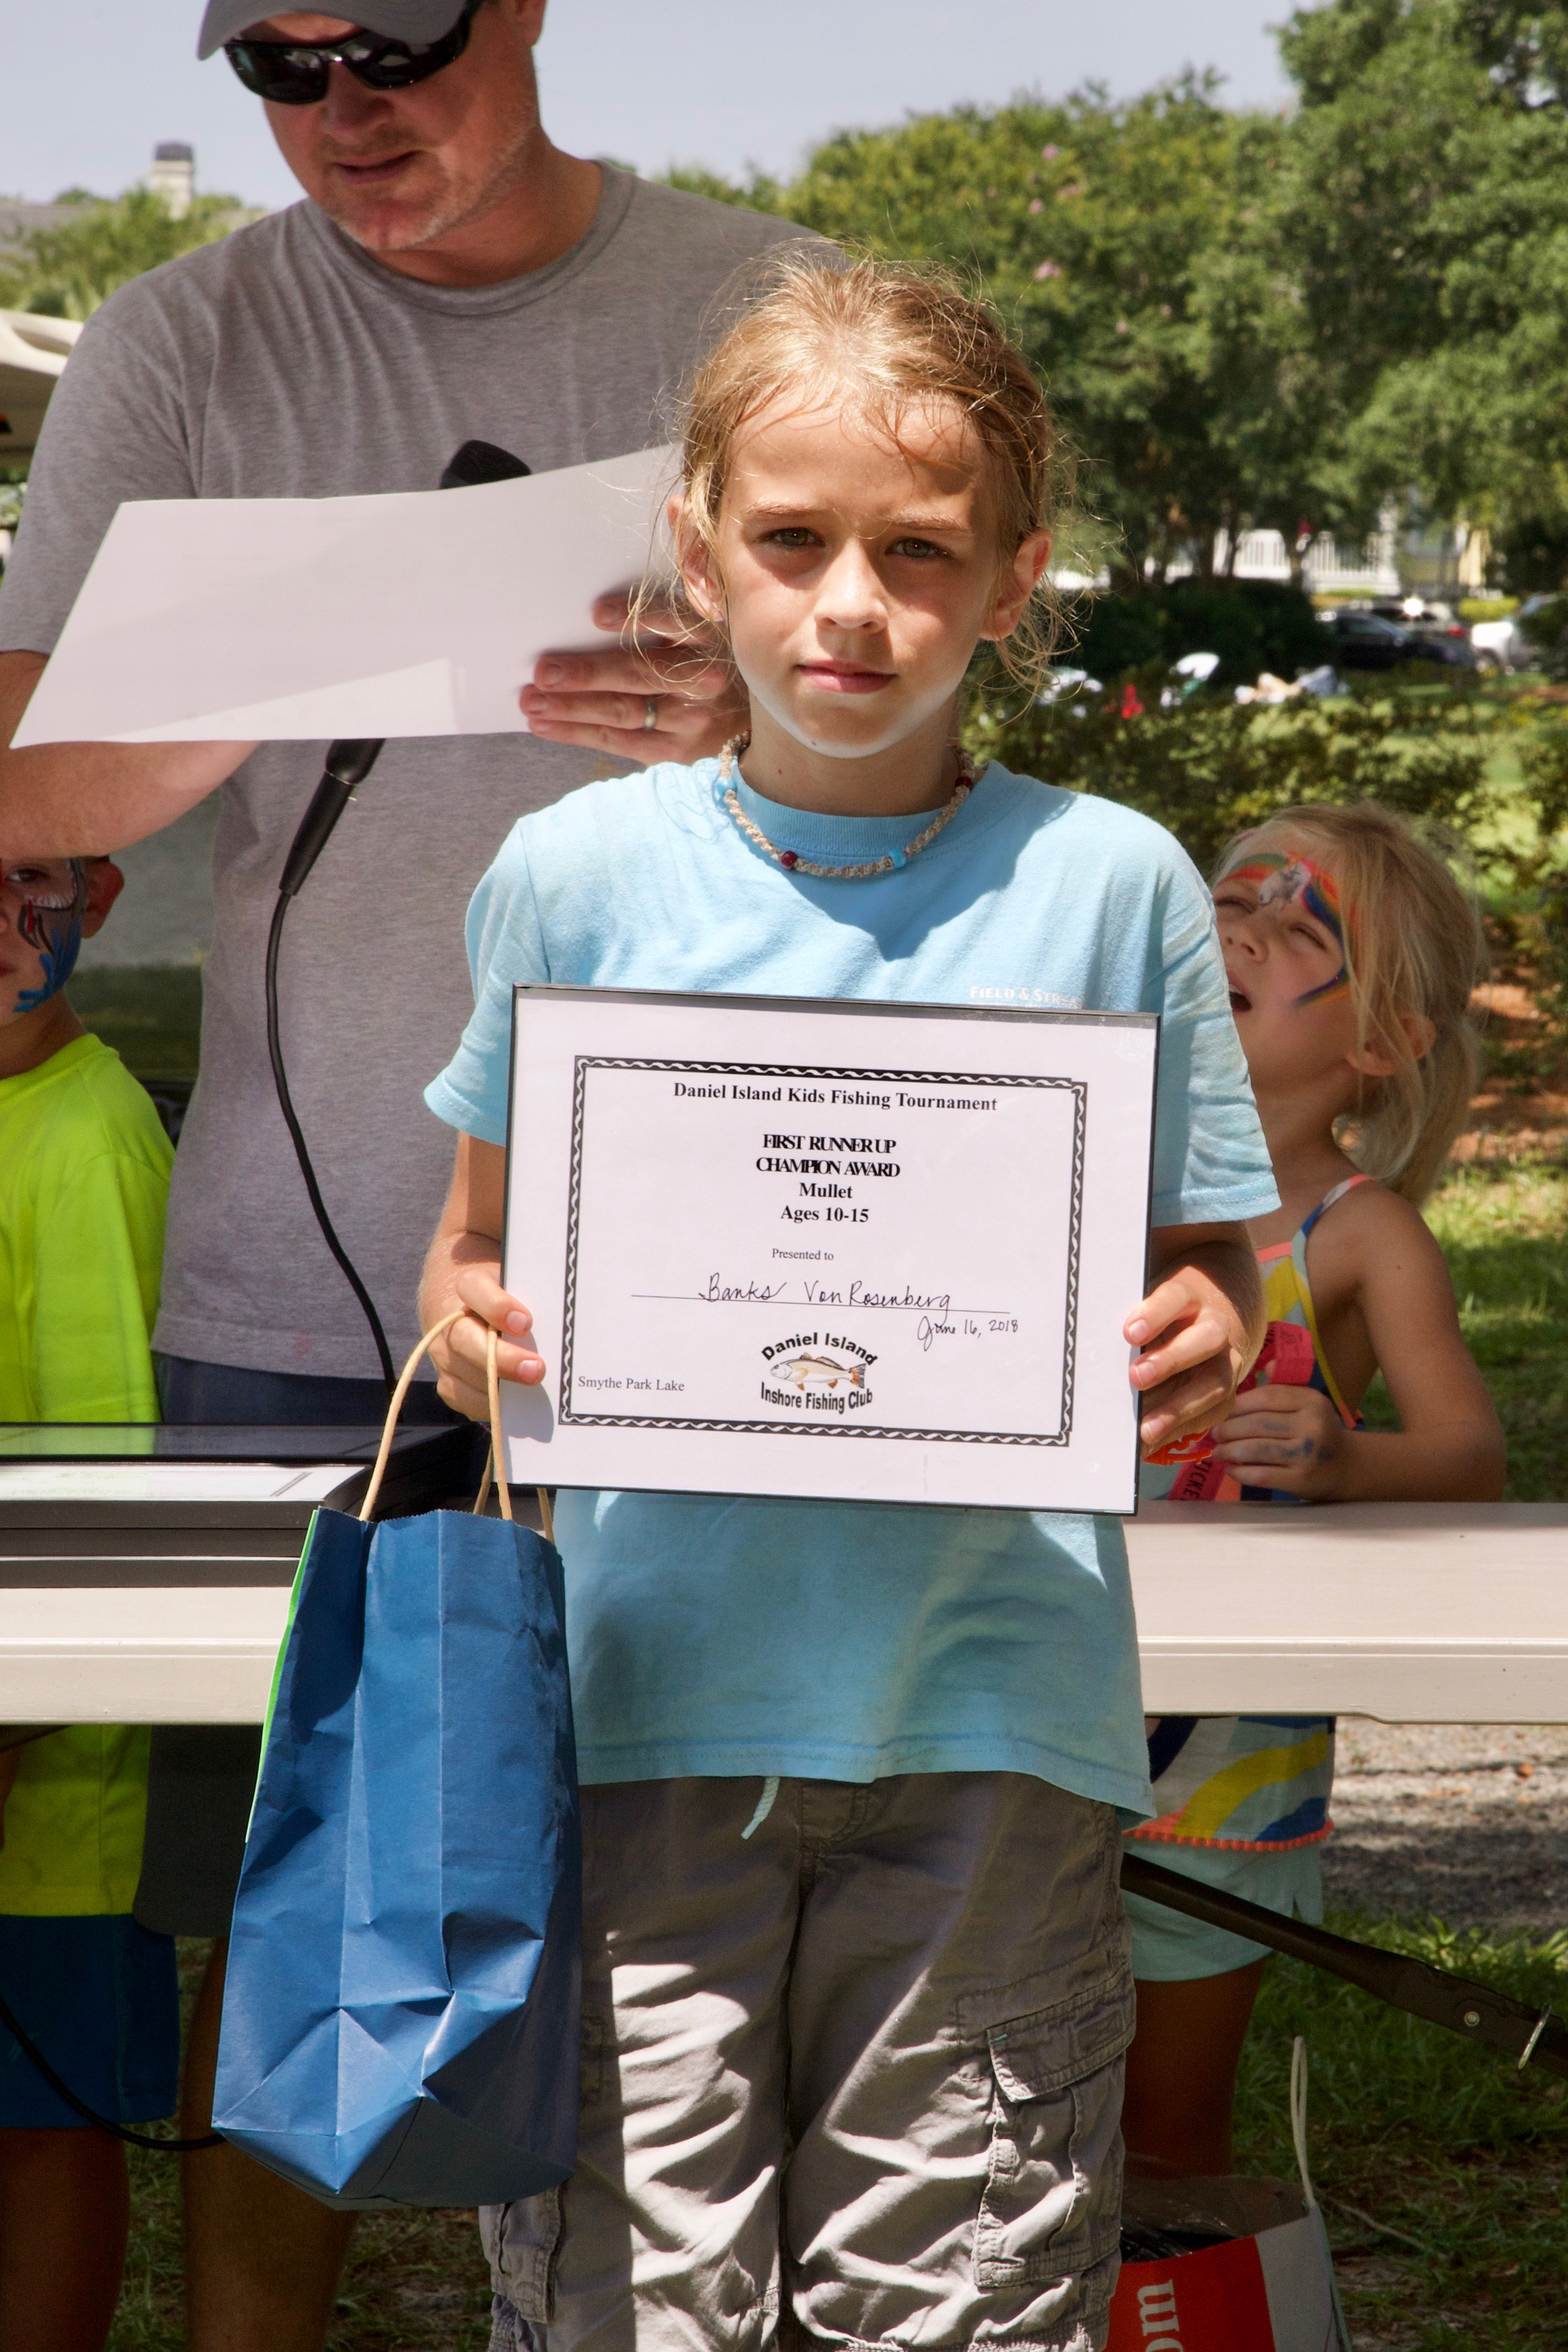 Banks Von Rosenberg – Champion Award, 1st Runner Up, Mullet, Ages 10-15.